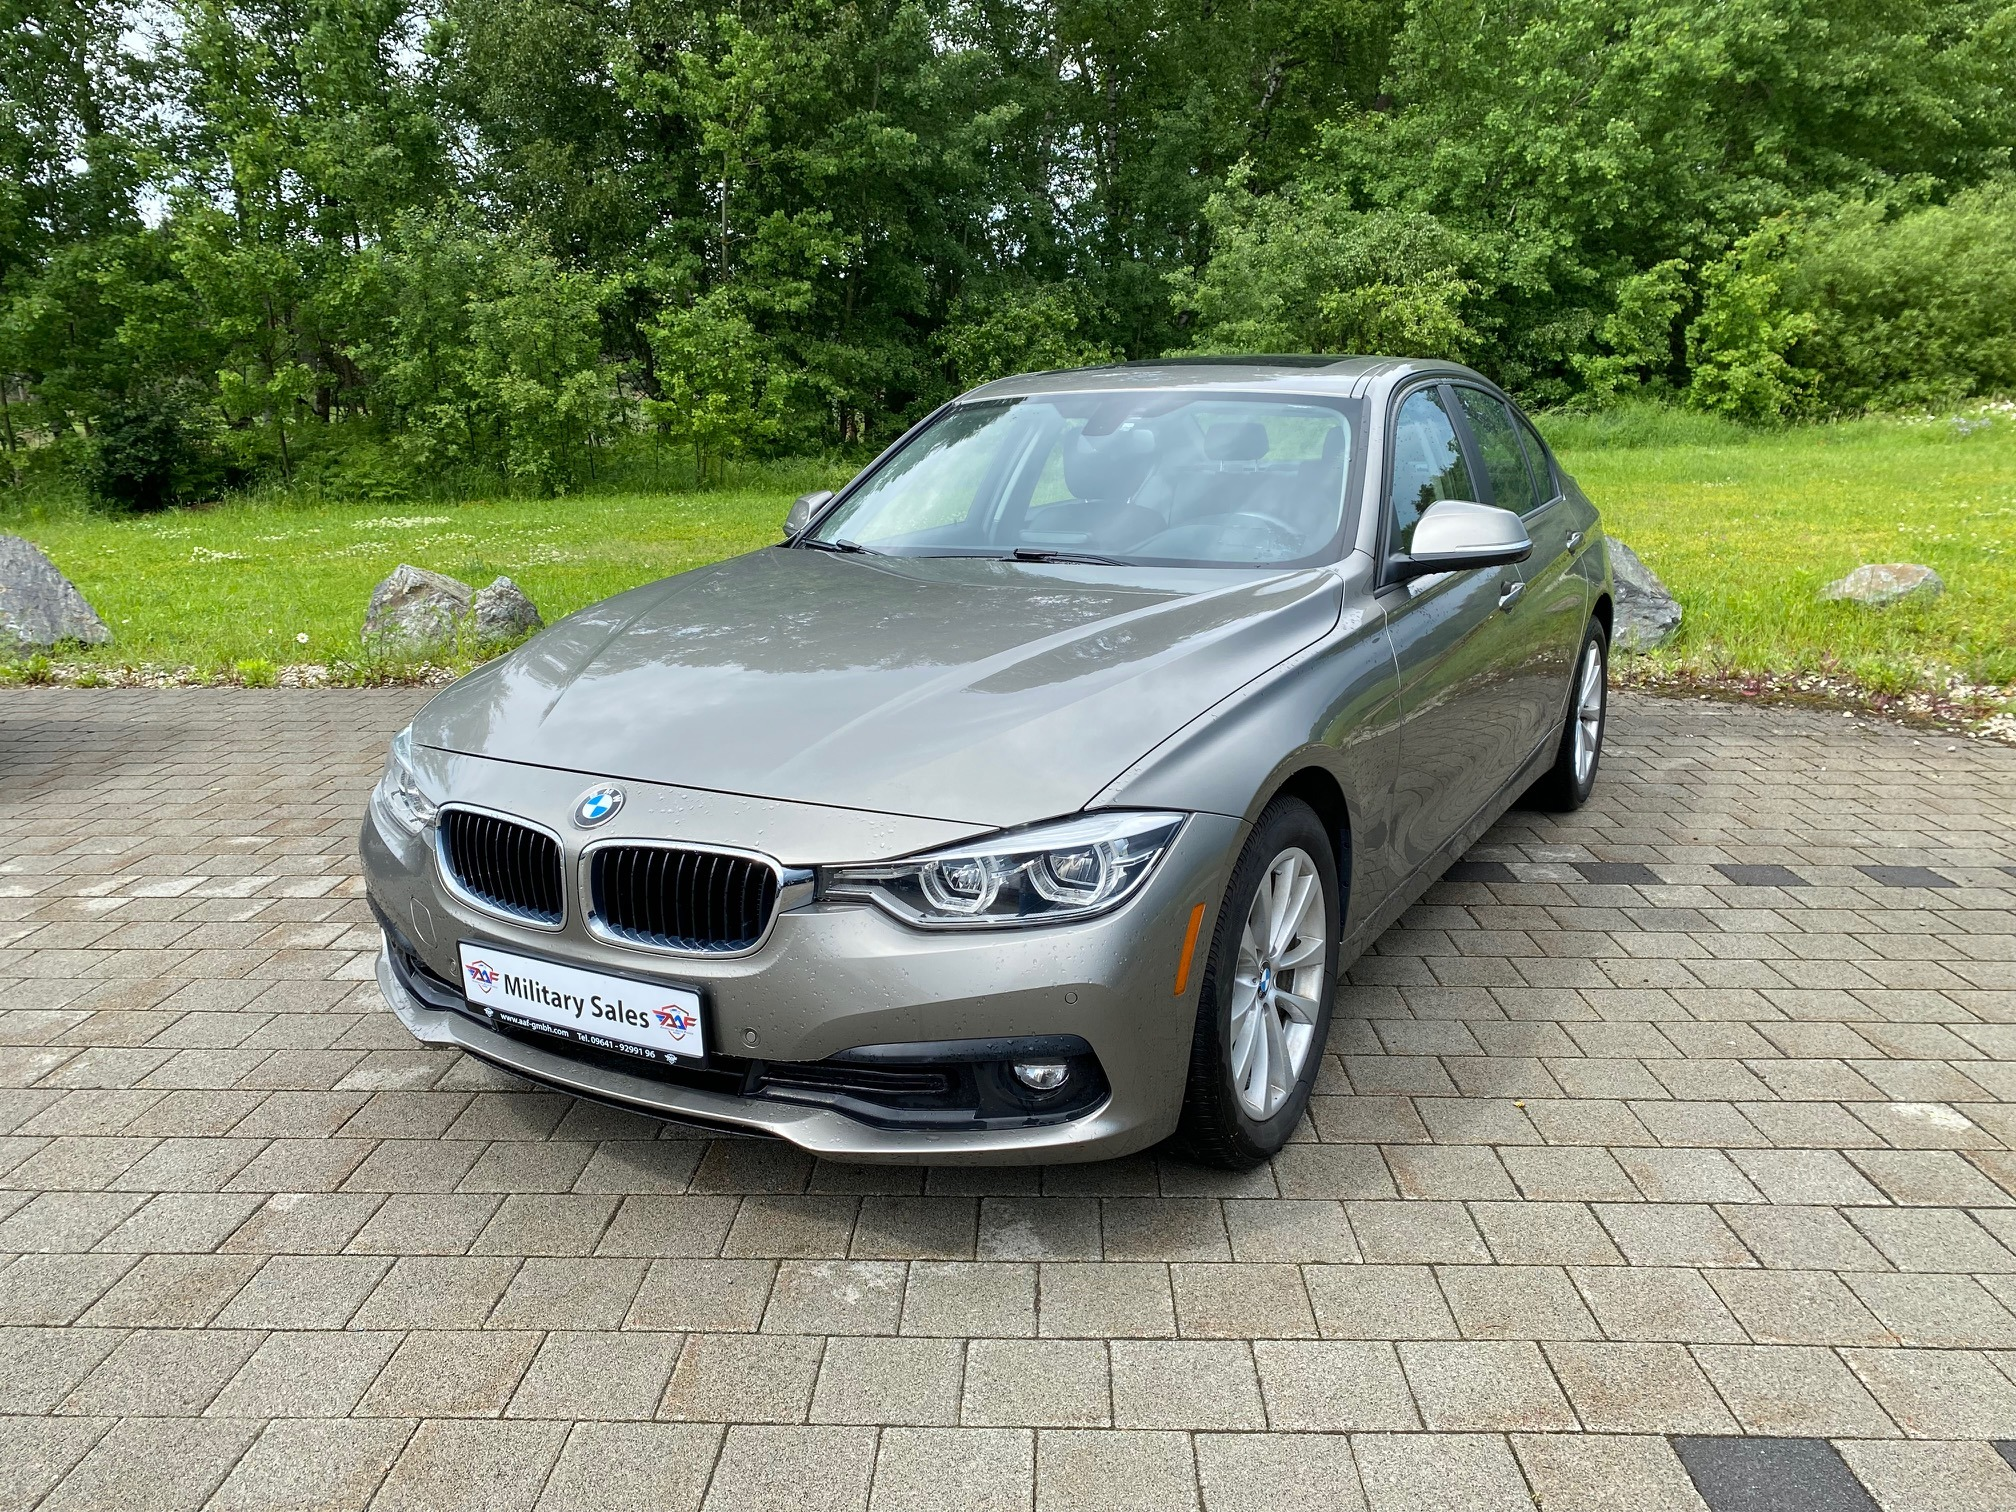 2018 BMW 320i xDrive </br>as low as </br>$199 per paycheck